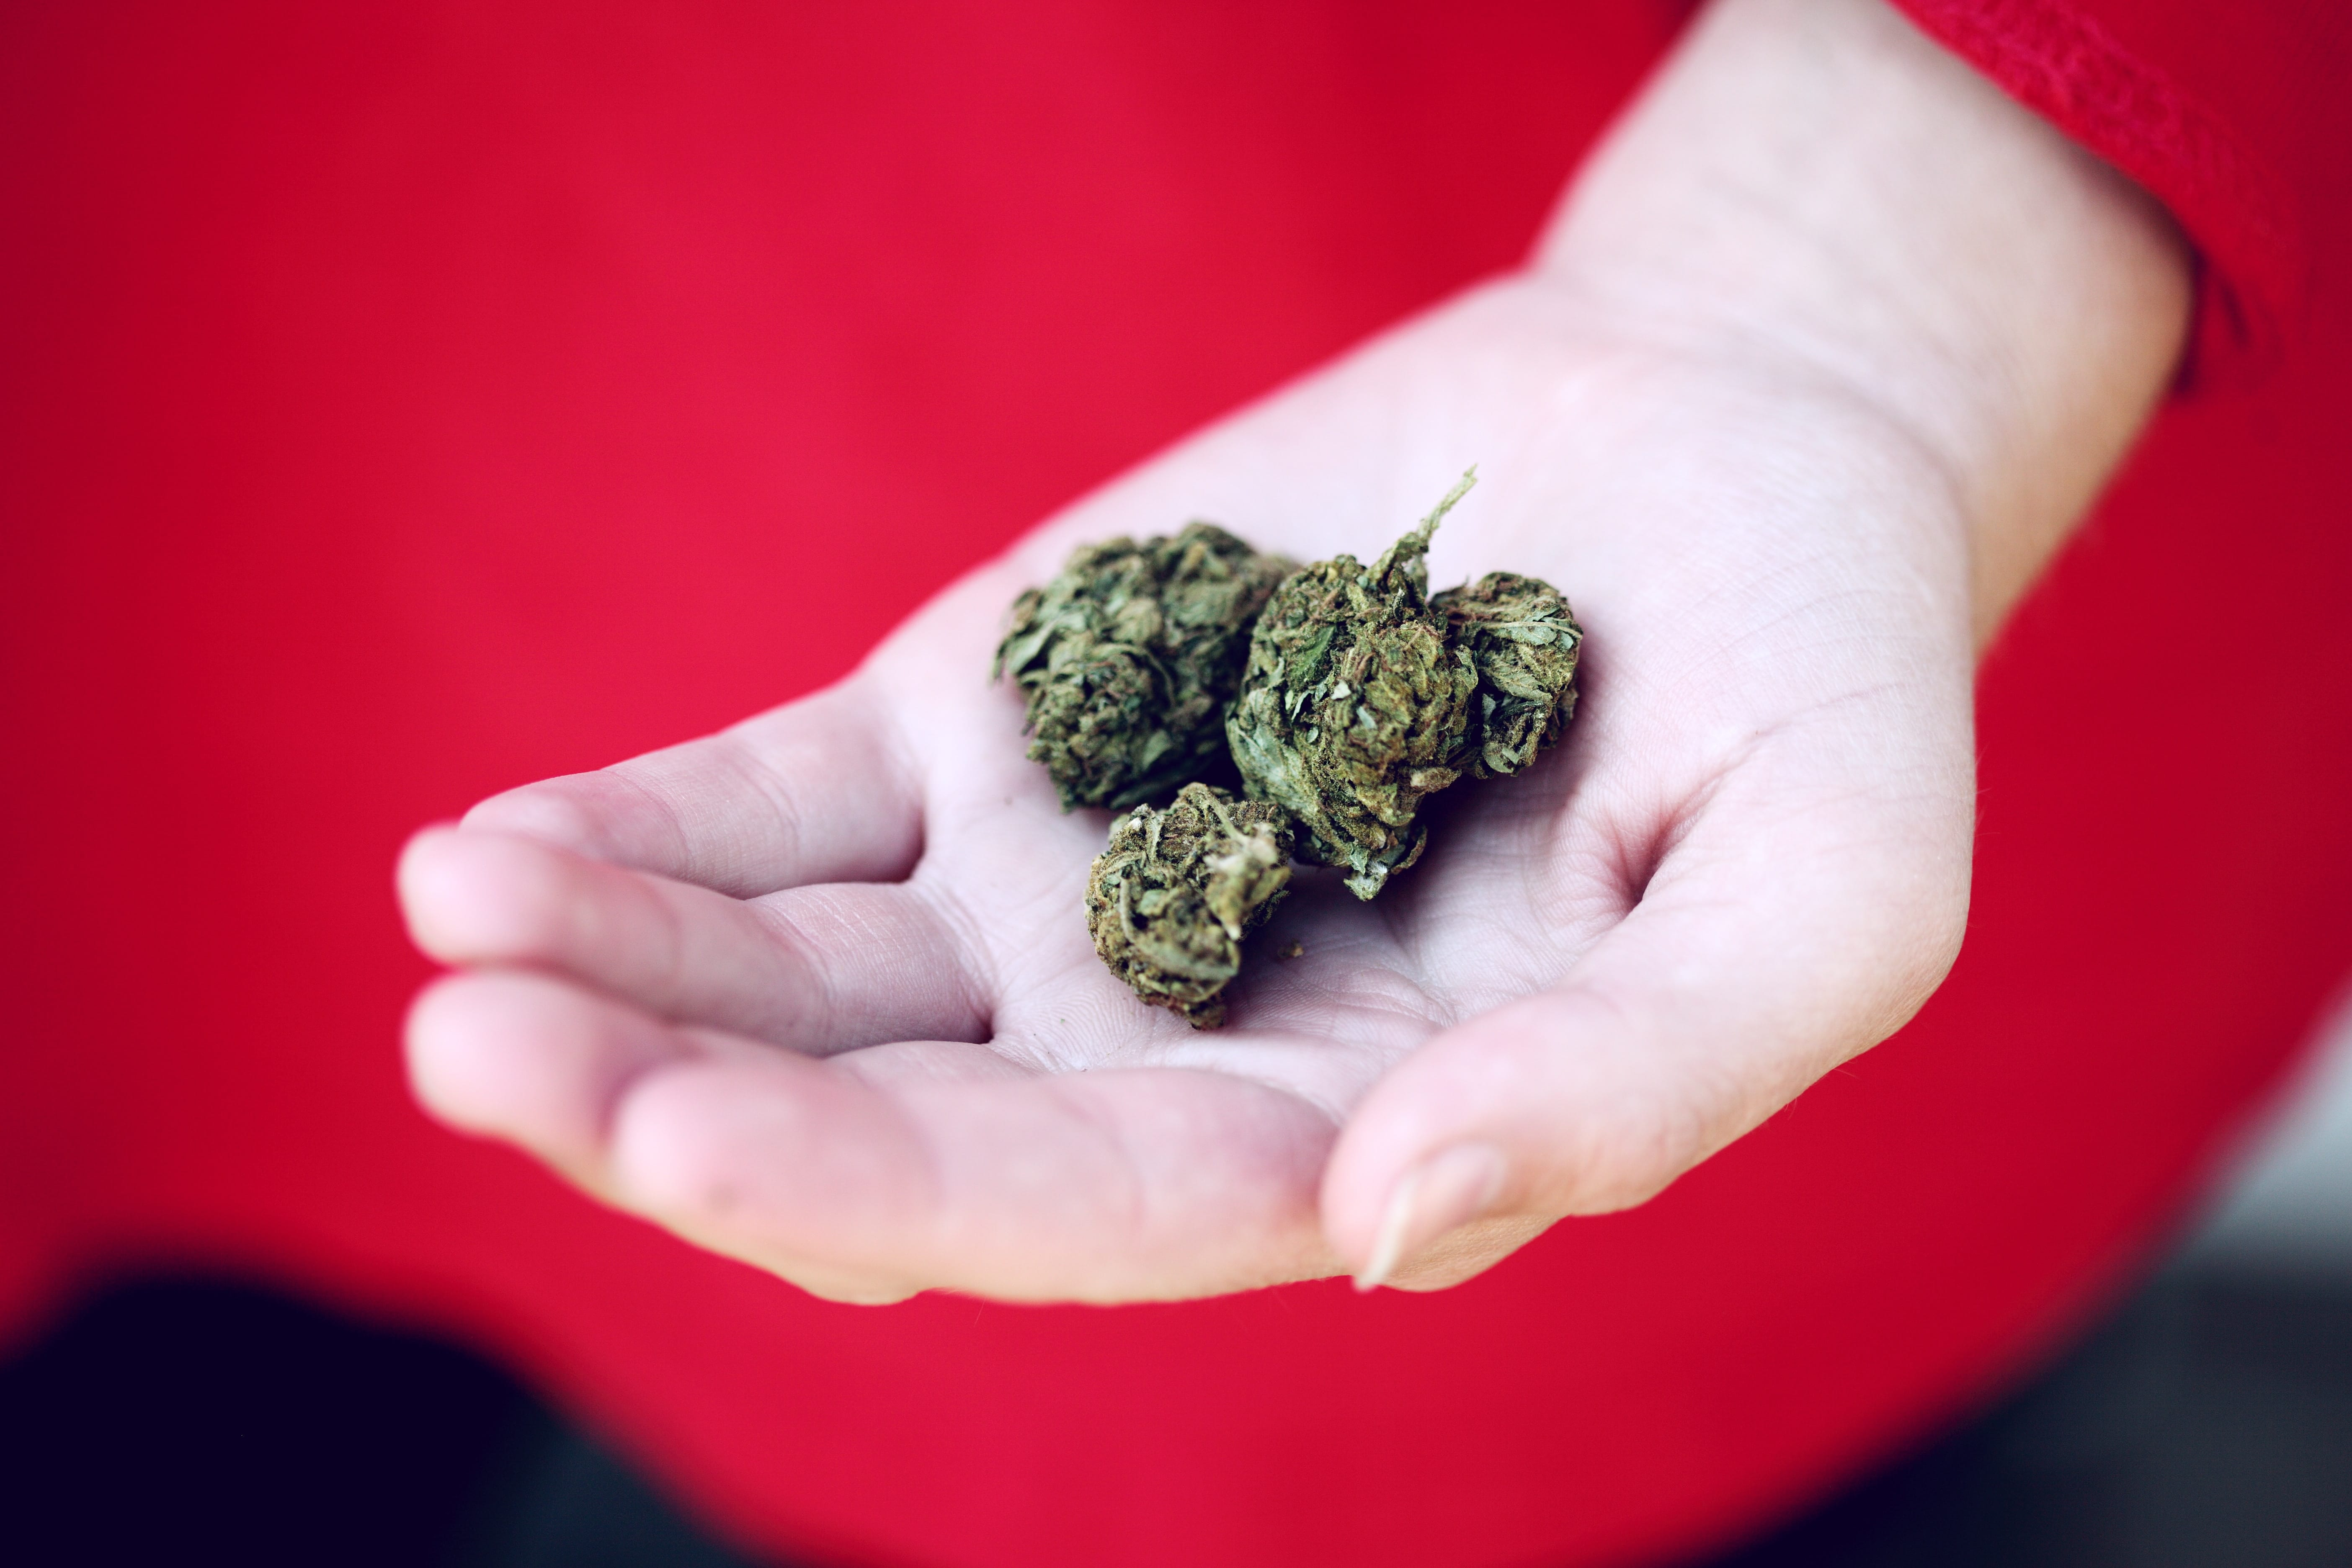 Woman in red holding marijuana buds in the palm of her hand; image by Sharon McCutcheon, via Unsplash.com.